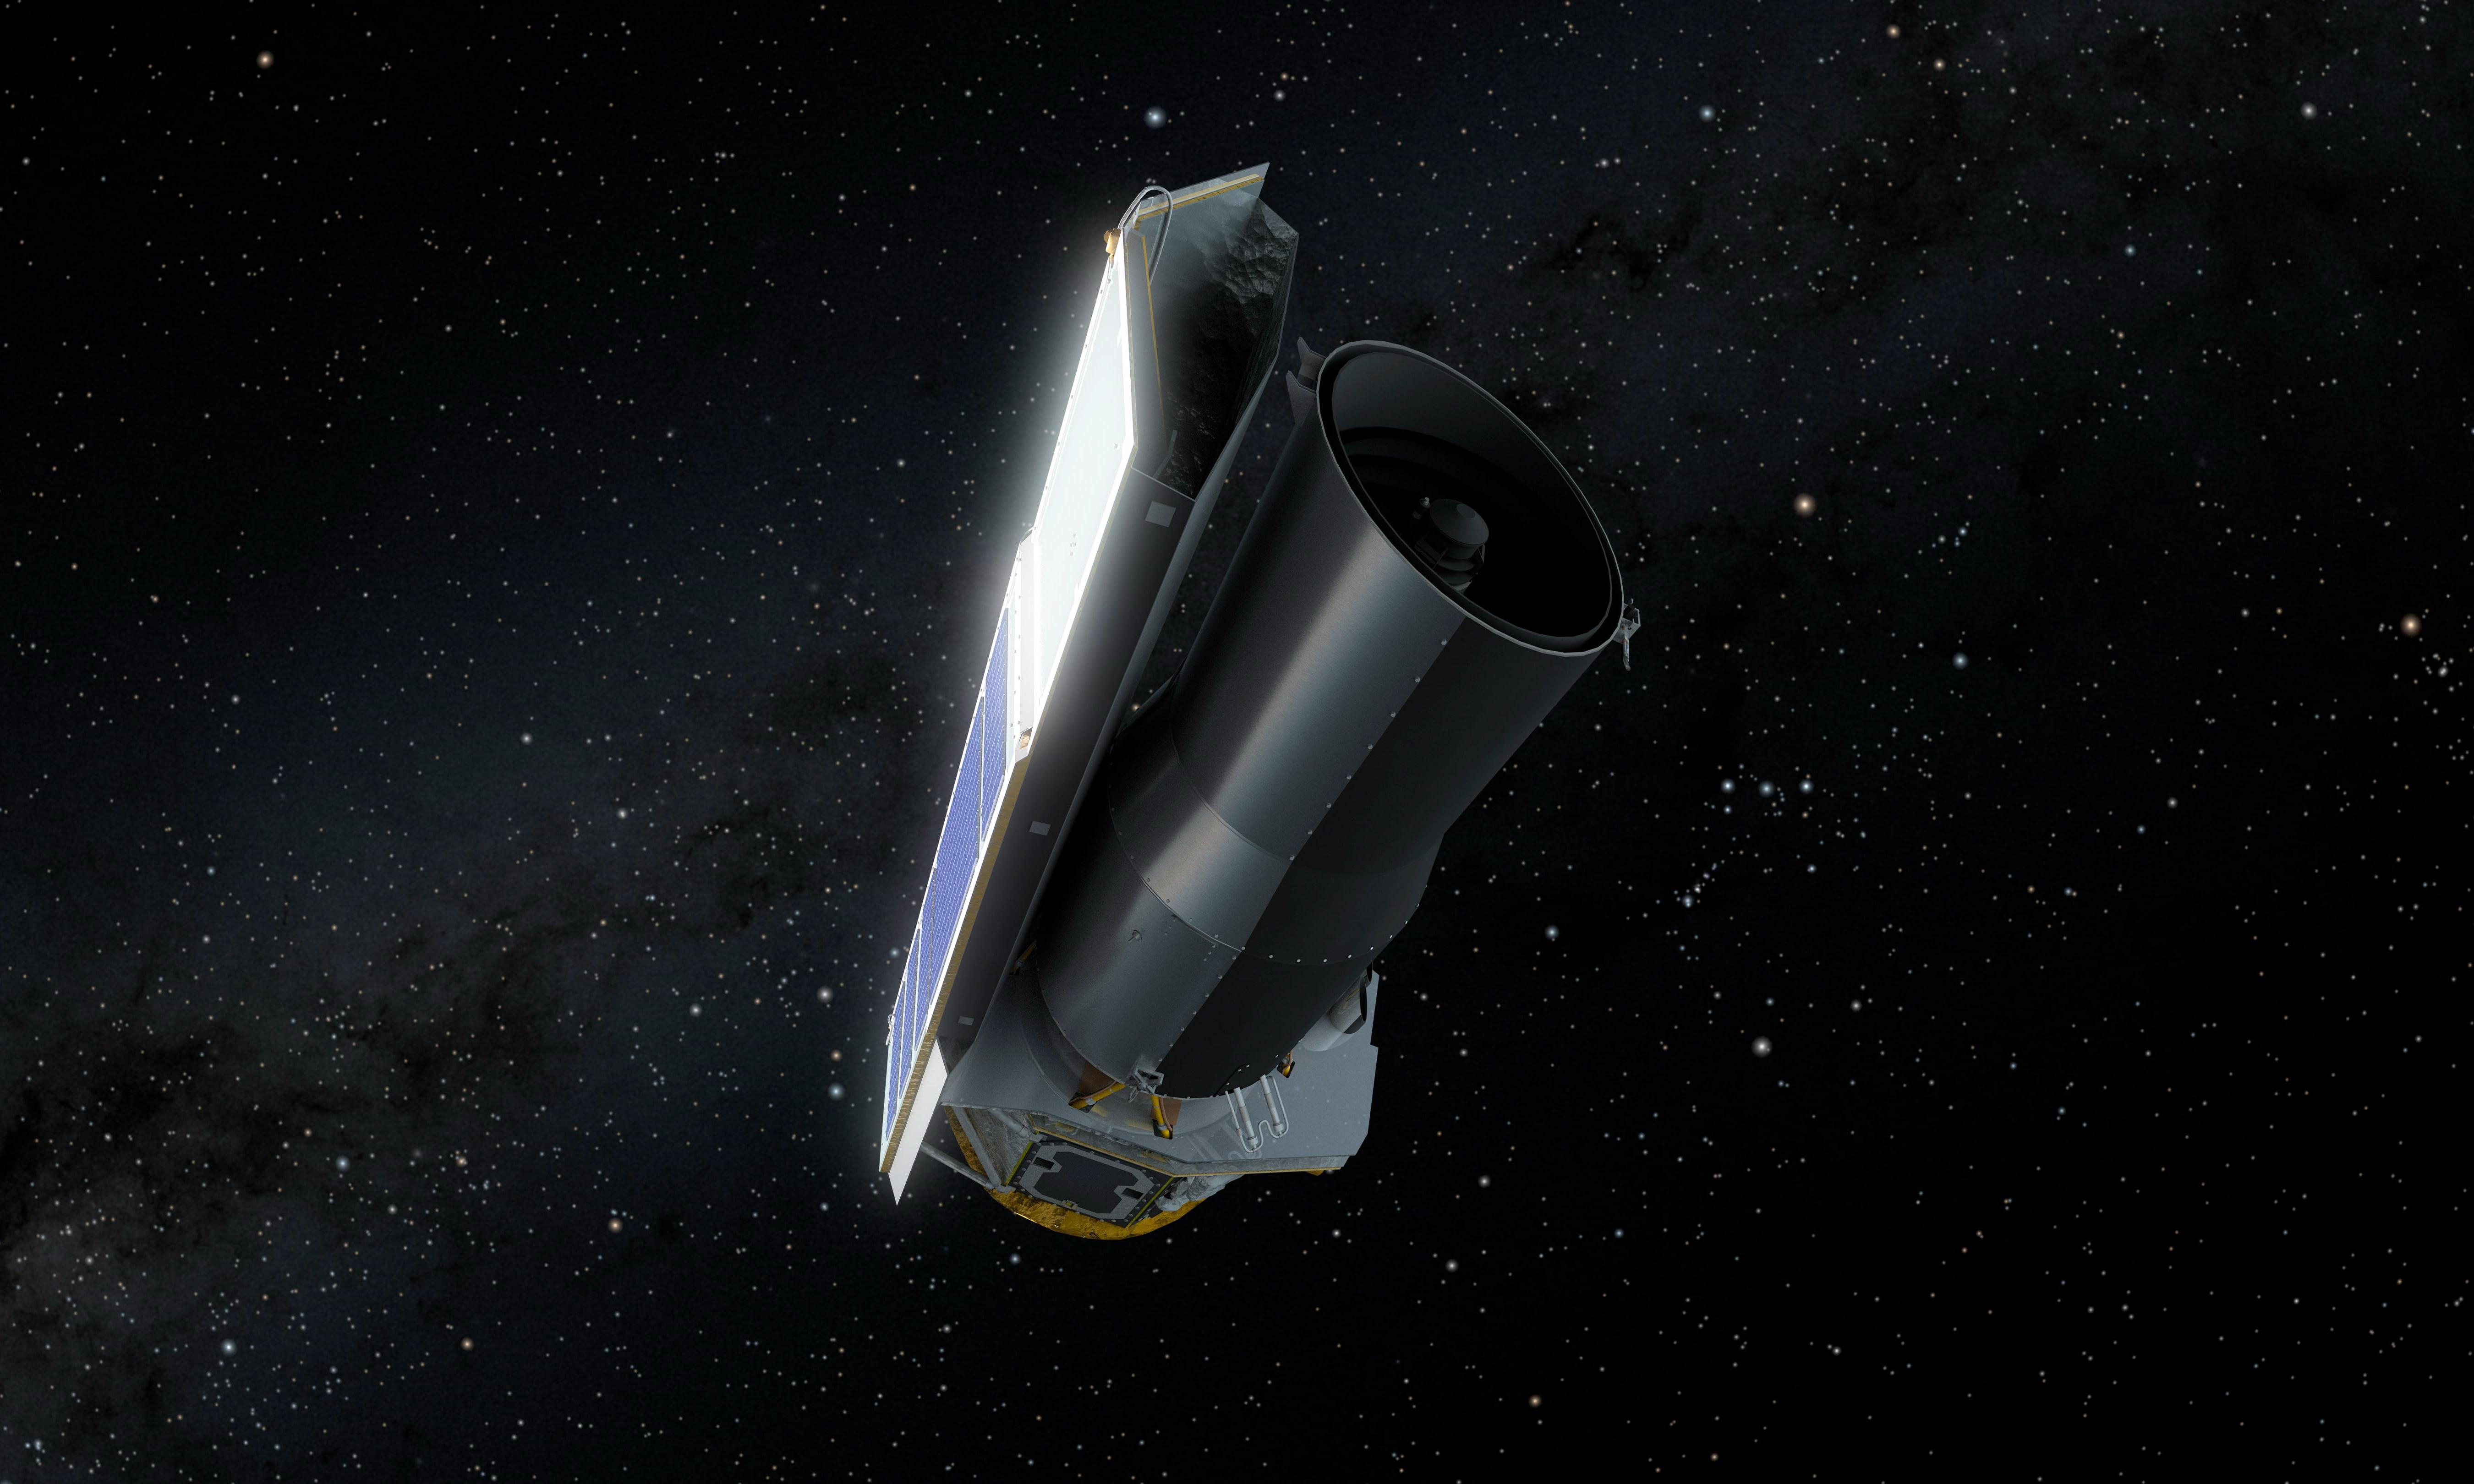 Spacewatch: Nasa ends 16-year Spitzer infrared mission